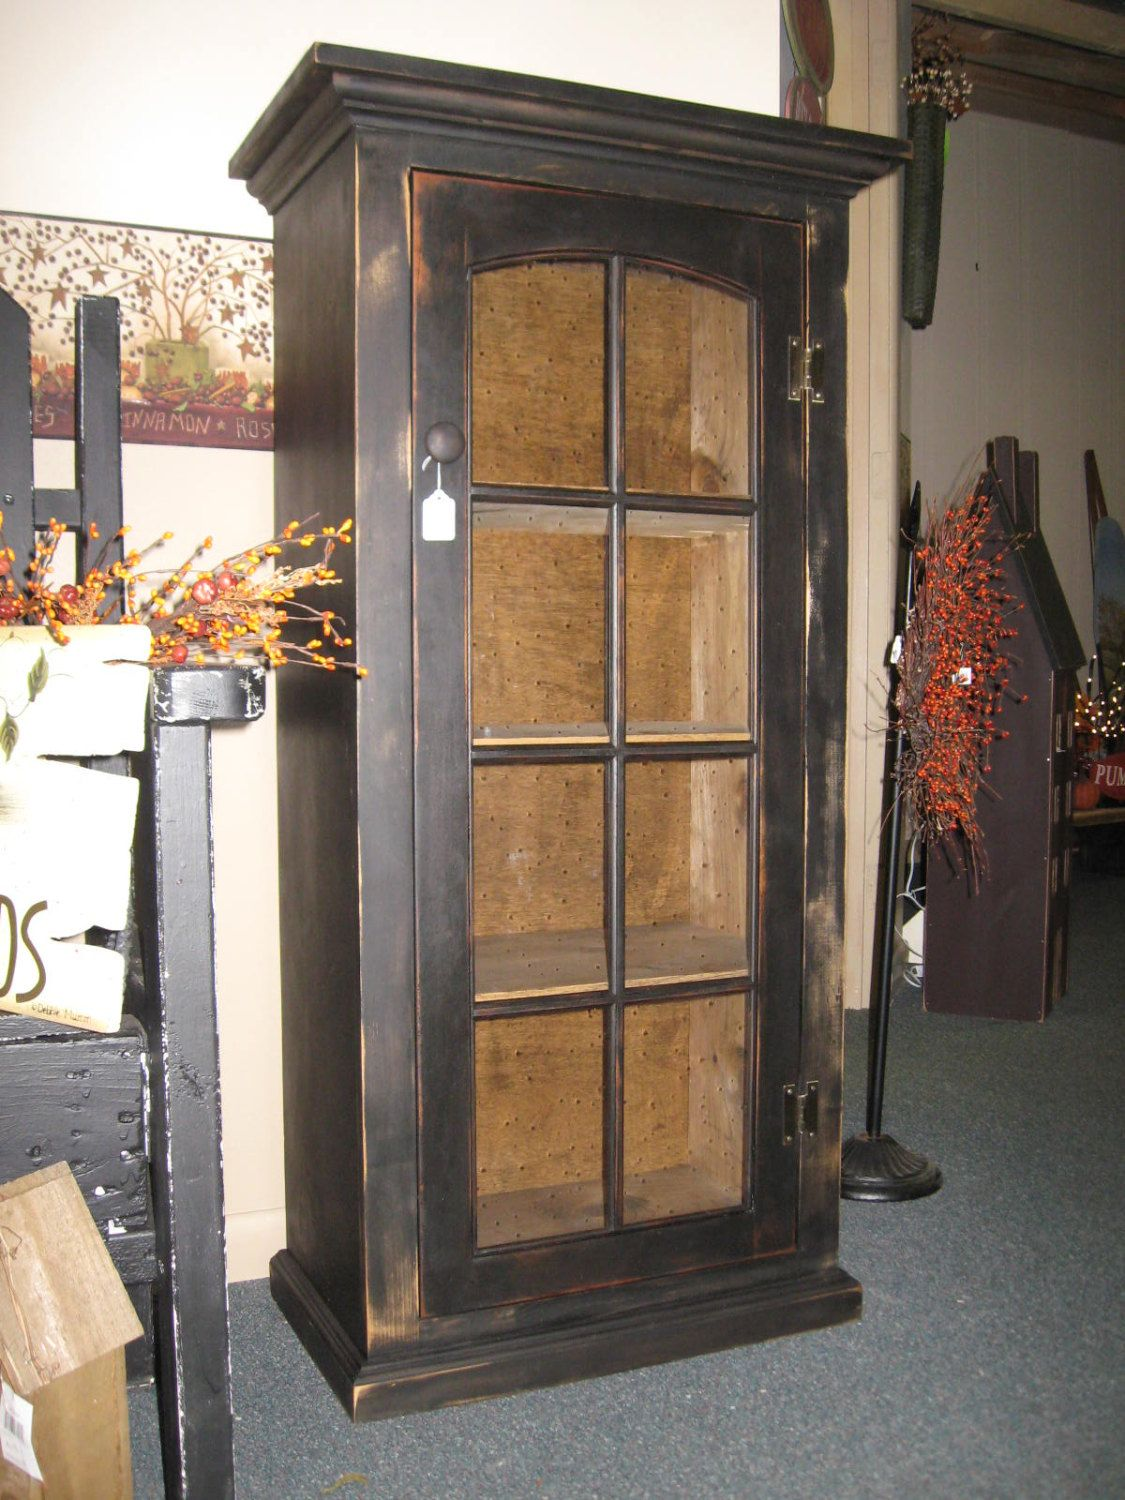 Swell Distressed Black Cabinet With Glass Doors Google Search Home Interior And Landscaping Analalmasignezvosmurscom